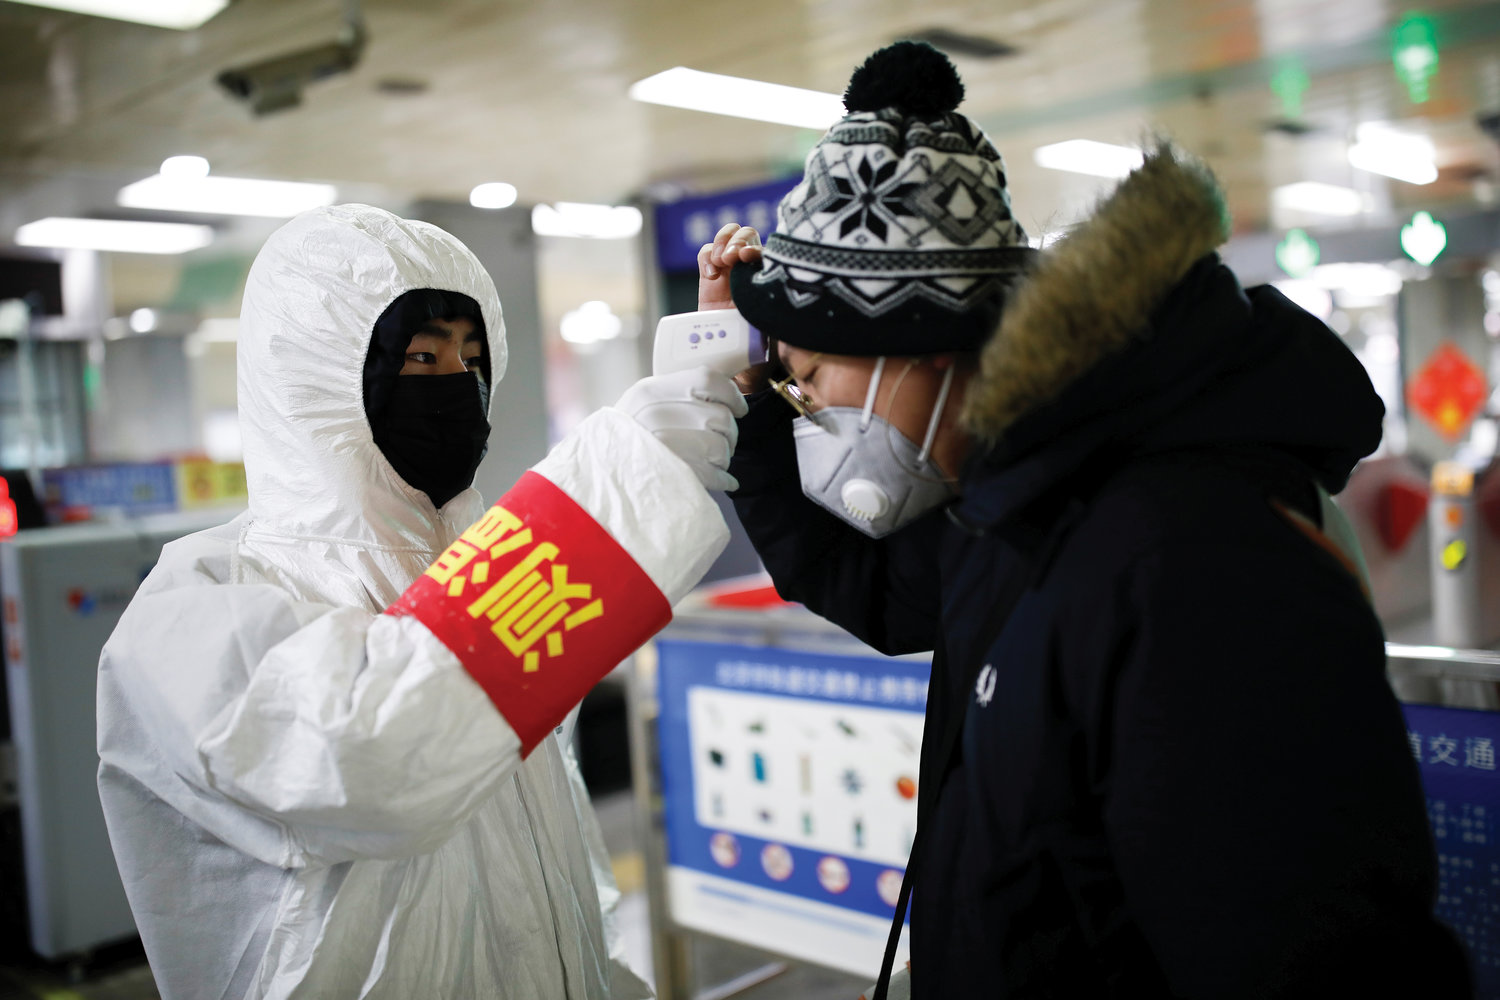 CAUTION—A staff member checks the temperature of a passenger entering a Beijing subway station Jan. 28 as the country is hit by an outbreak of the new coronavirus.